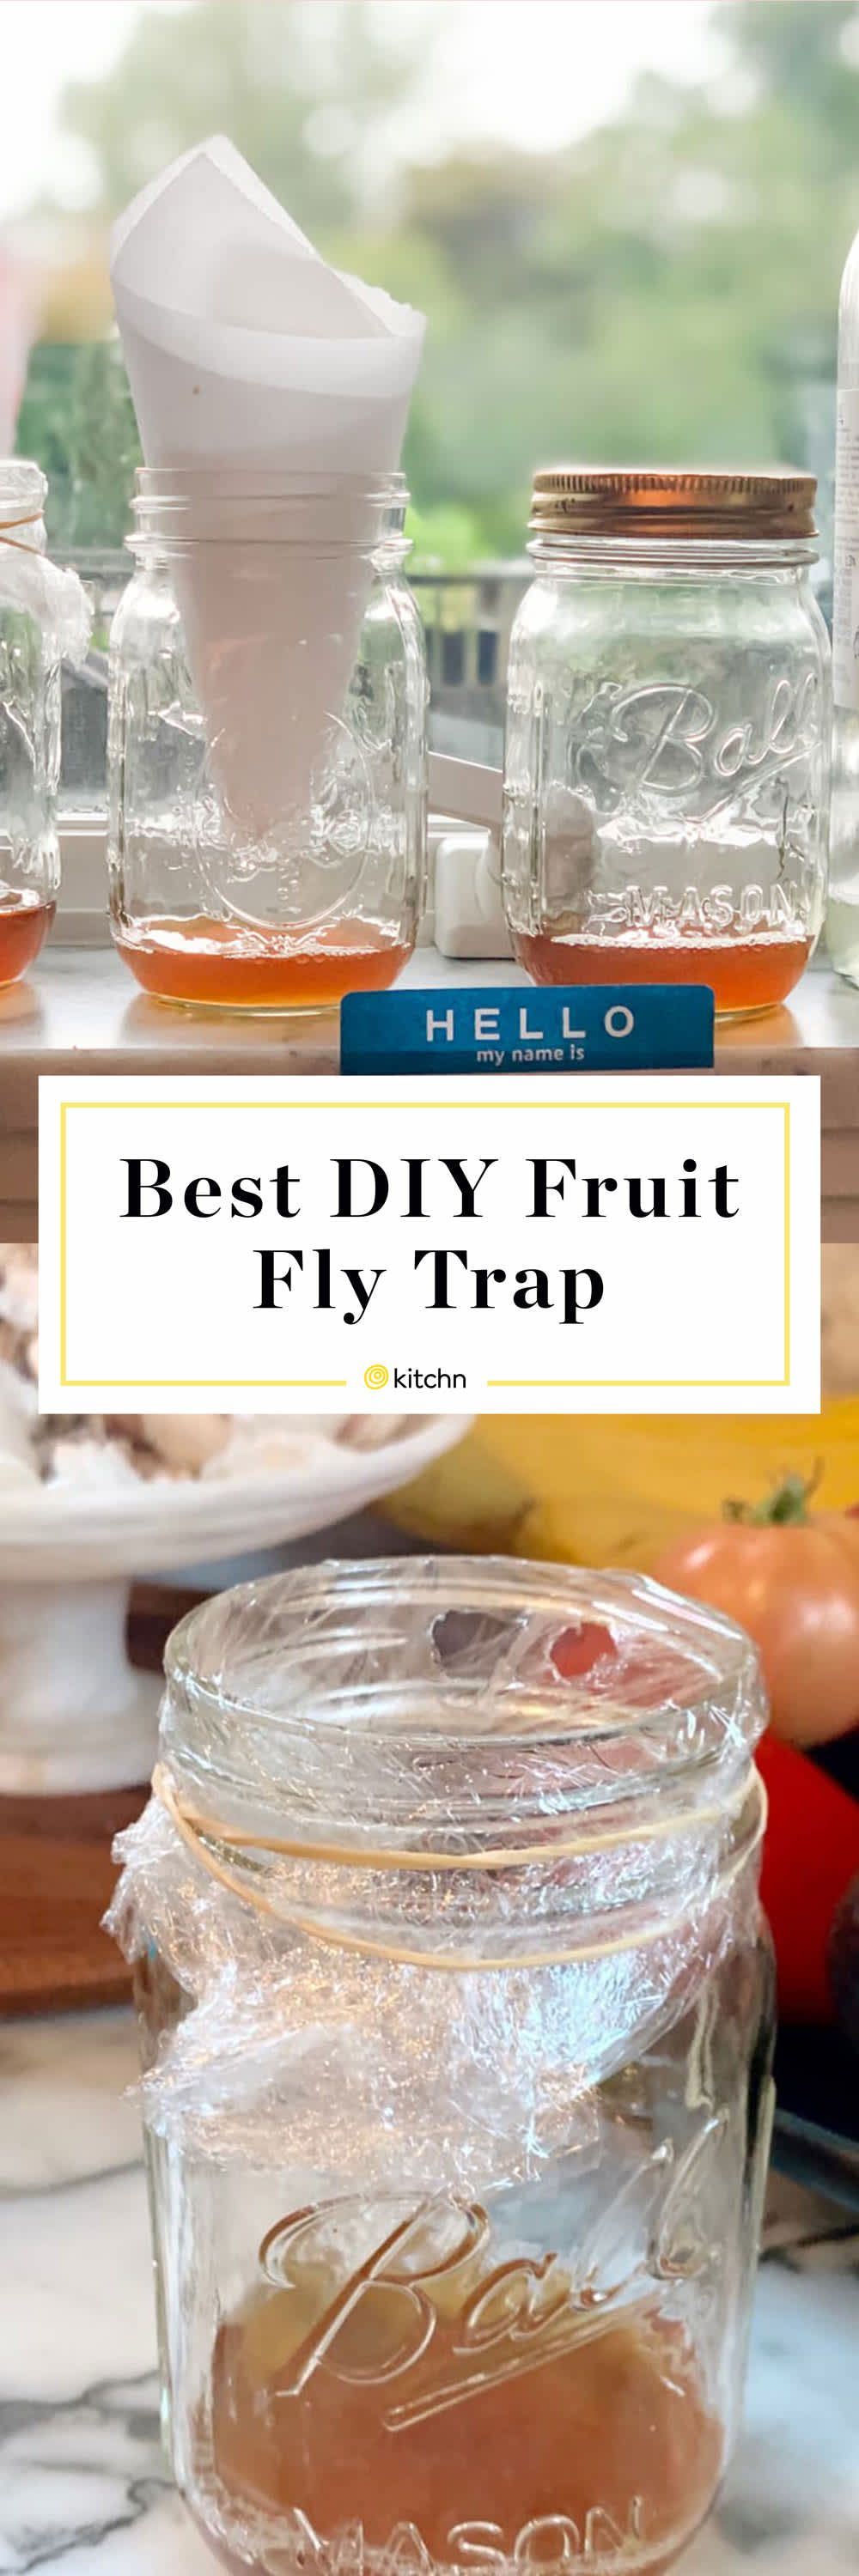 I Tested Four DIY Fruit Fly Traps and One Method Clearly